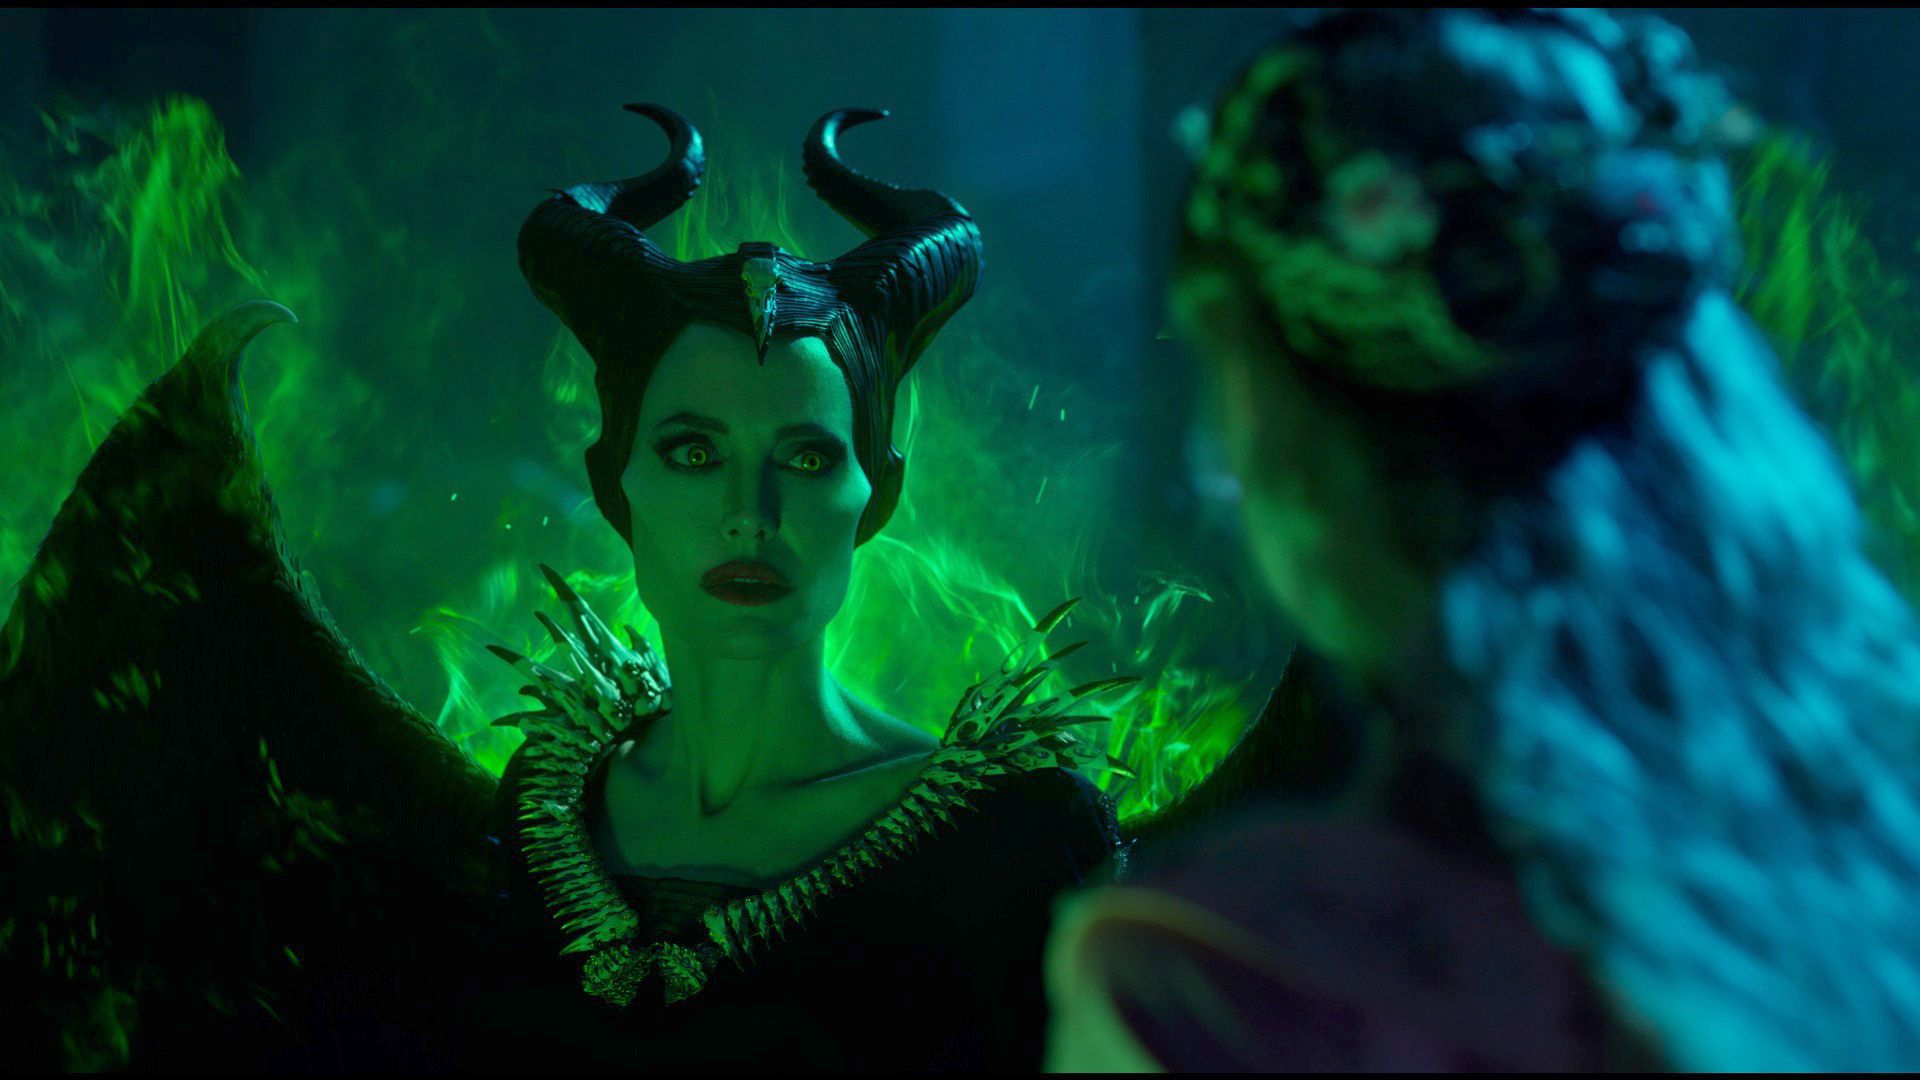 Maleficent Mistress Of Evil Wins Friday Box Office With